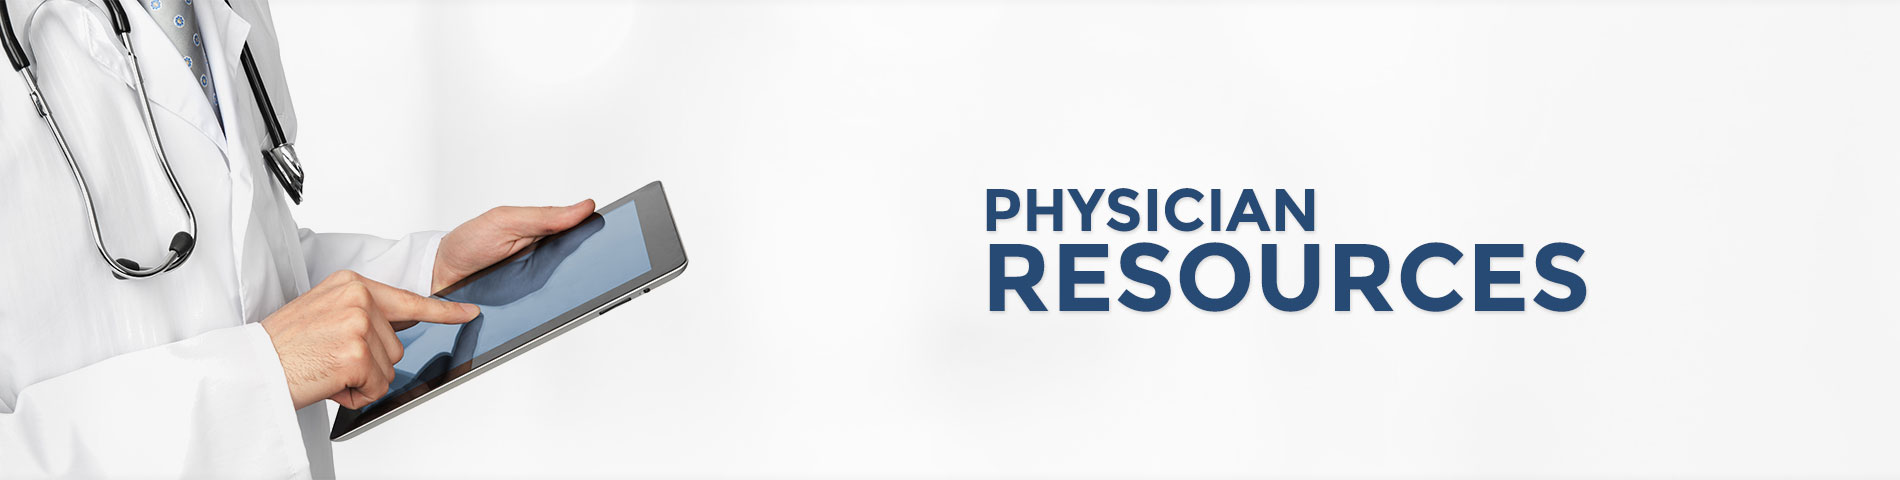 Physician Resources